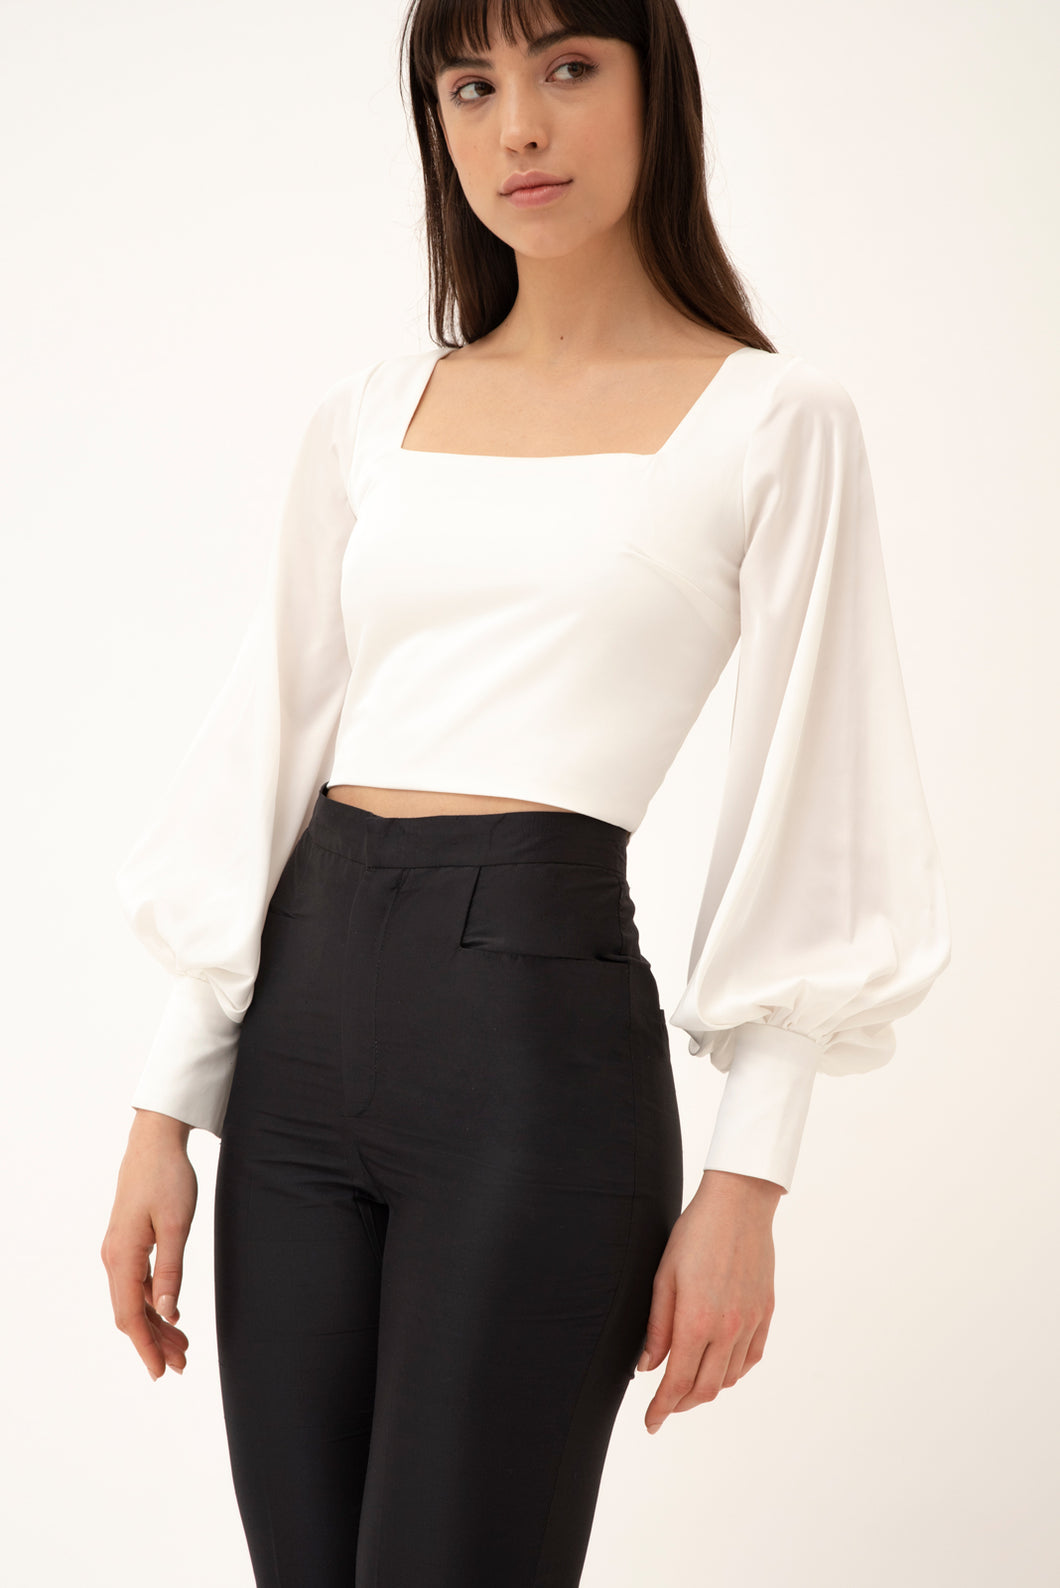 Nogal blouse with statement sleeves